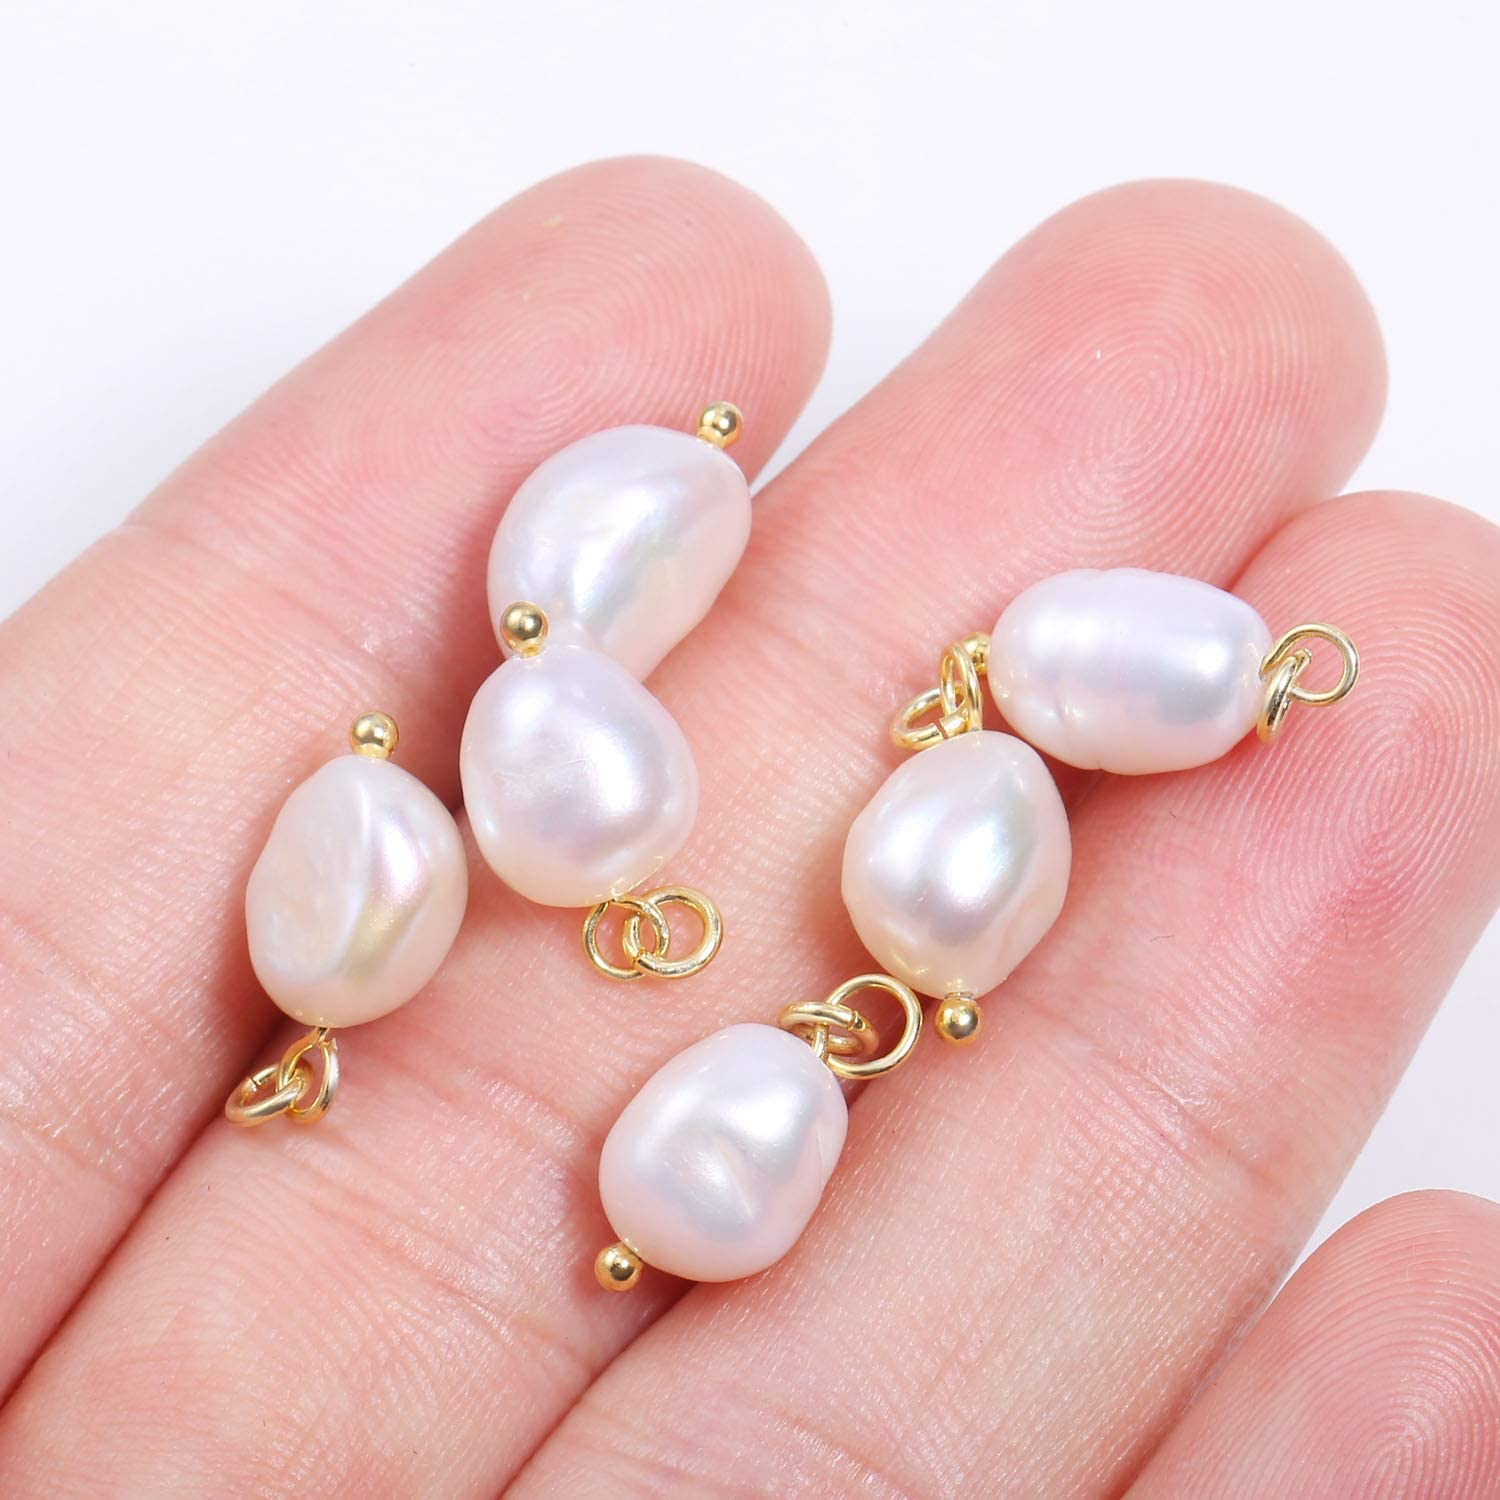 6PCS Flat Freshwater Pearls Pendant,Baroque Pearl Pendant Charms for Pearl Earring Necklace Making